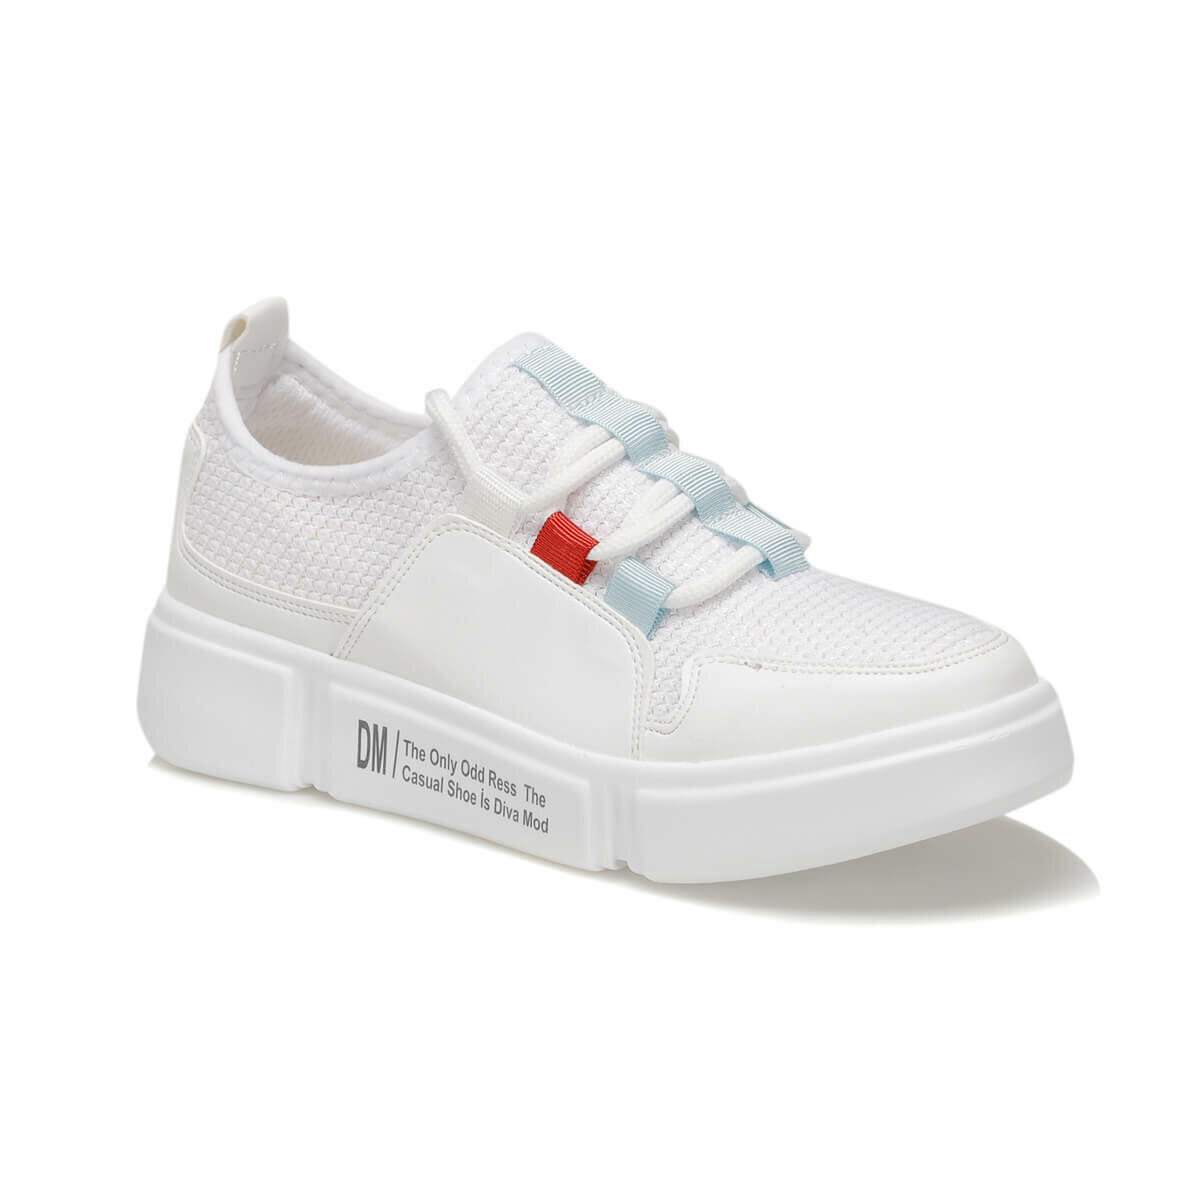 FLO CHEN20Y White Women 'S Sneaker Shoes BUTIGO